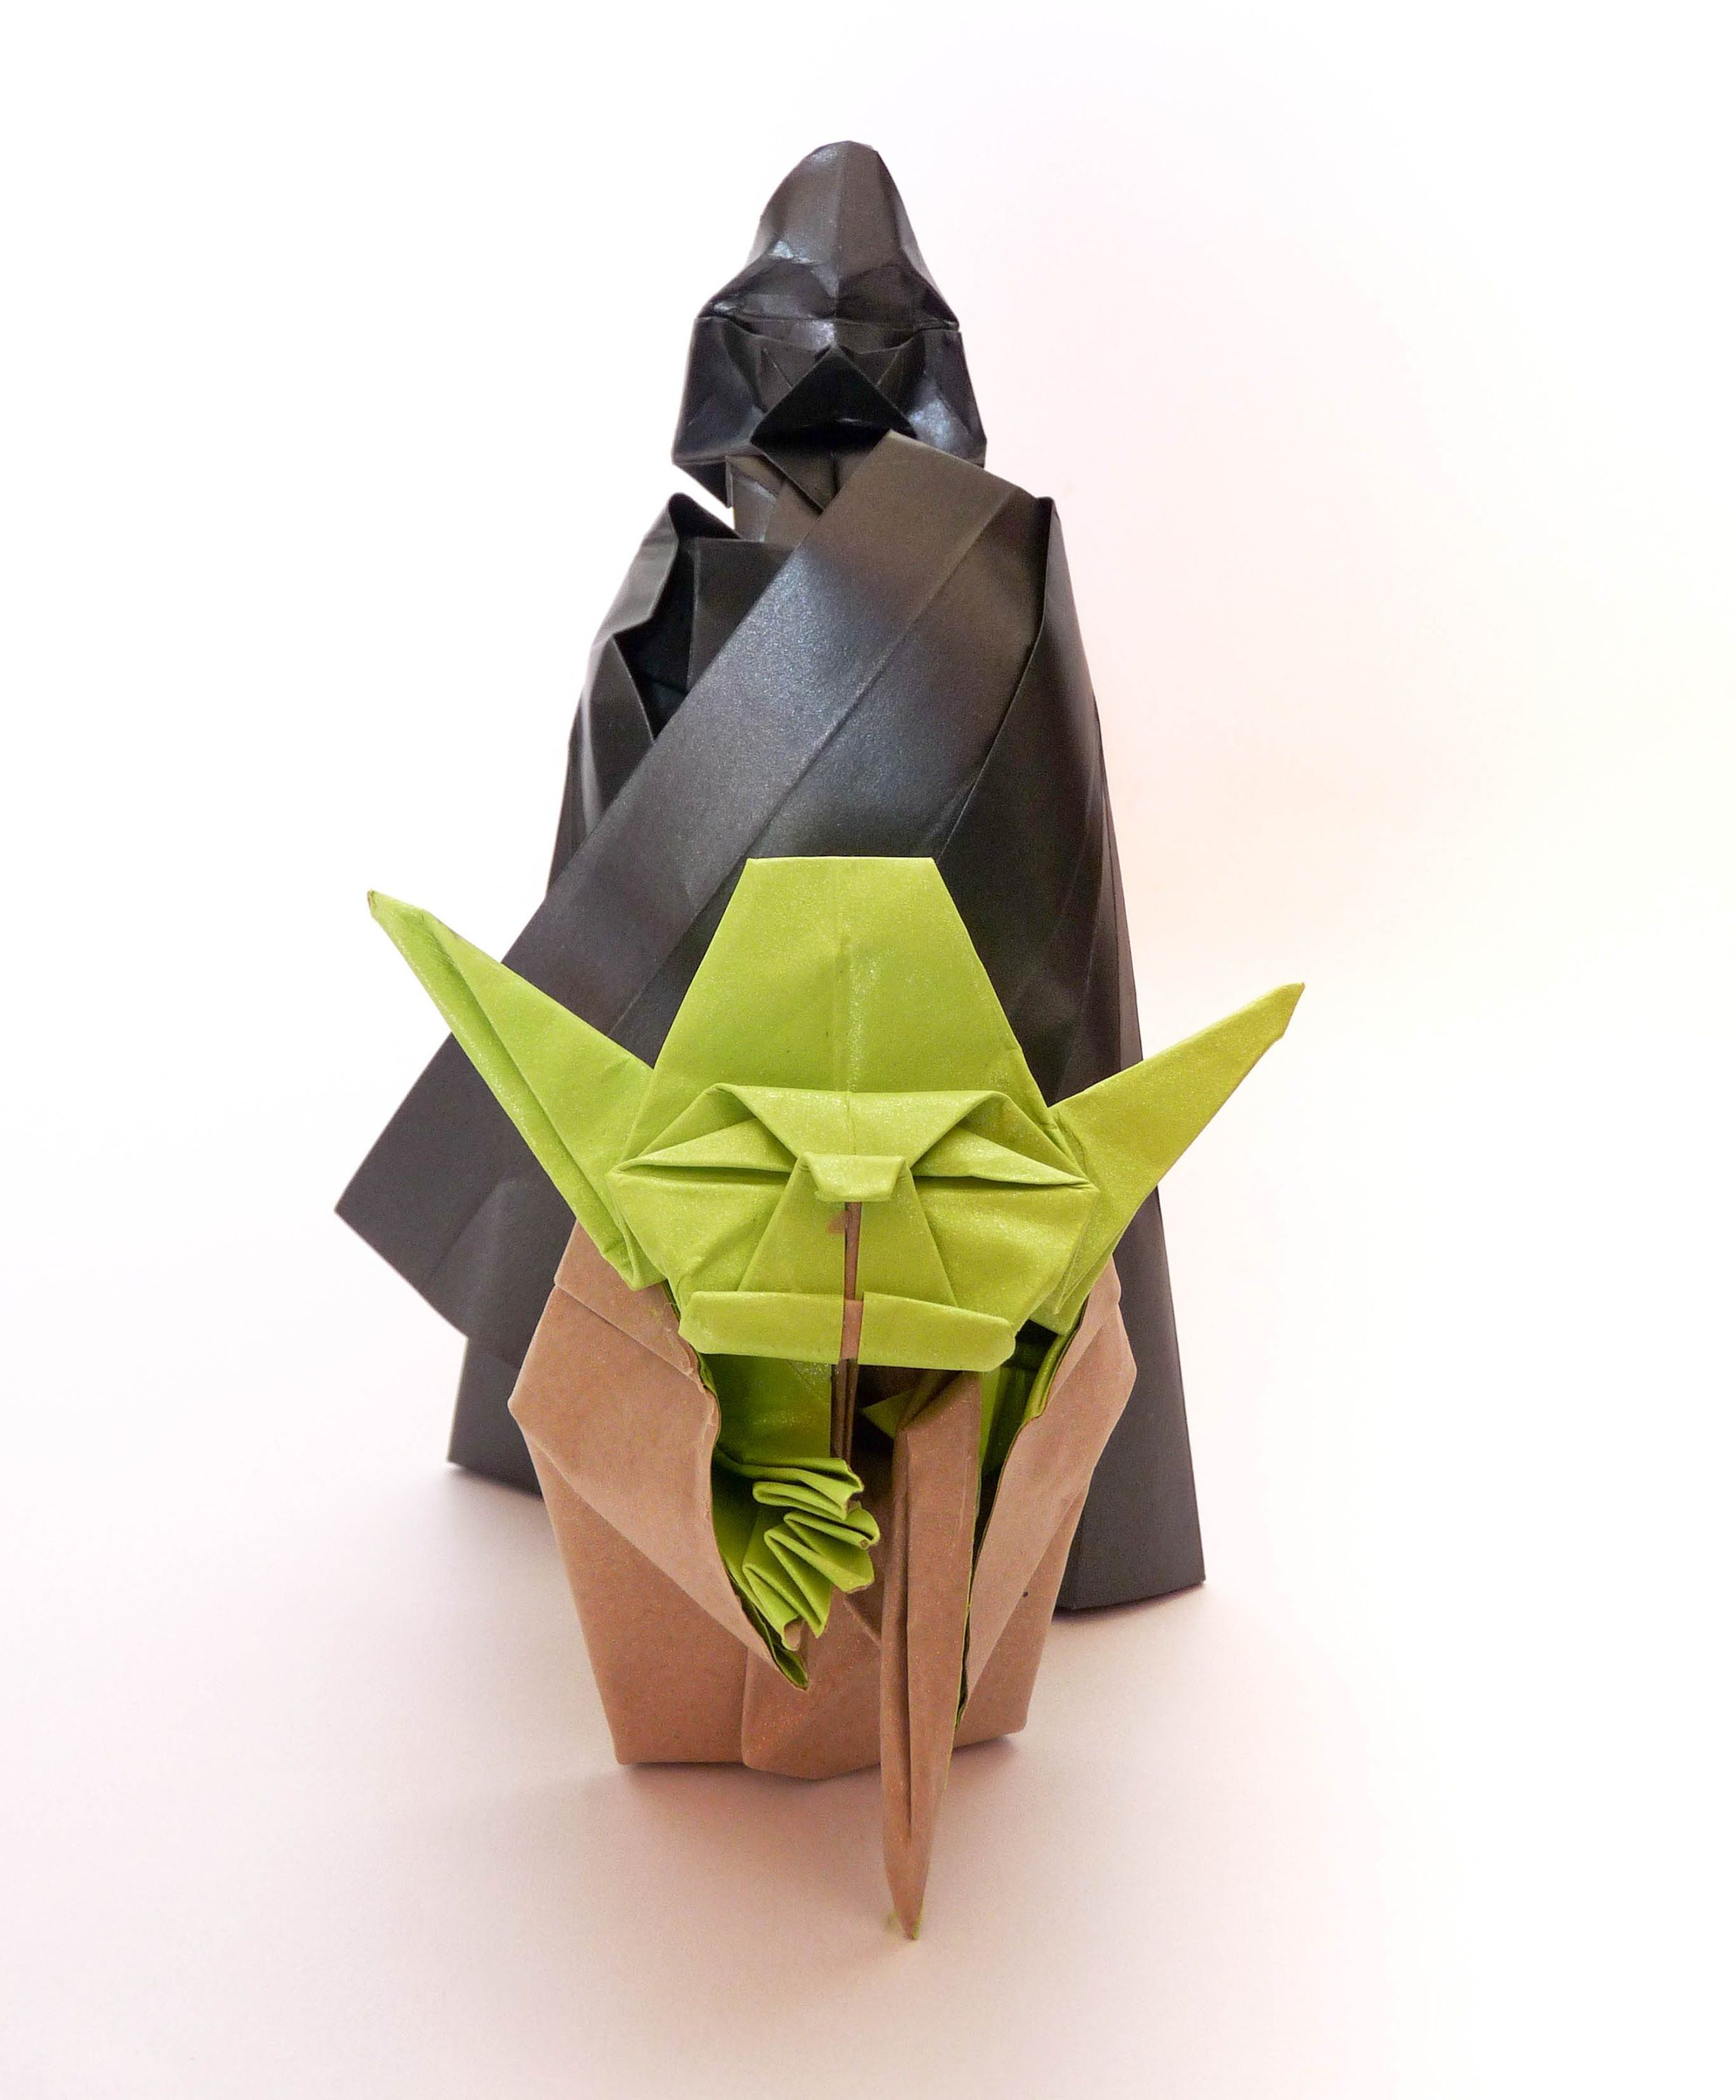 Origami Darth Vader 2.0 | origami | Pinterest | Origami ... - photo#41